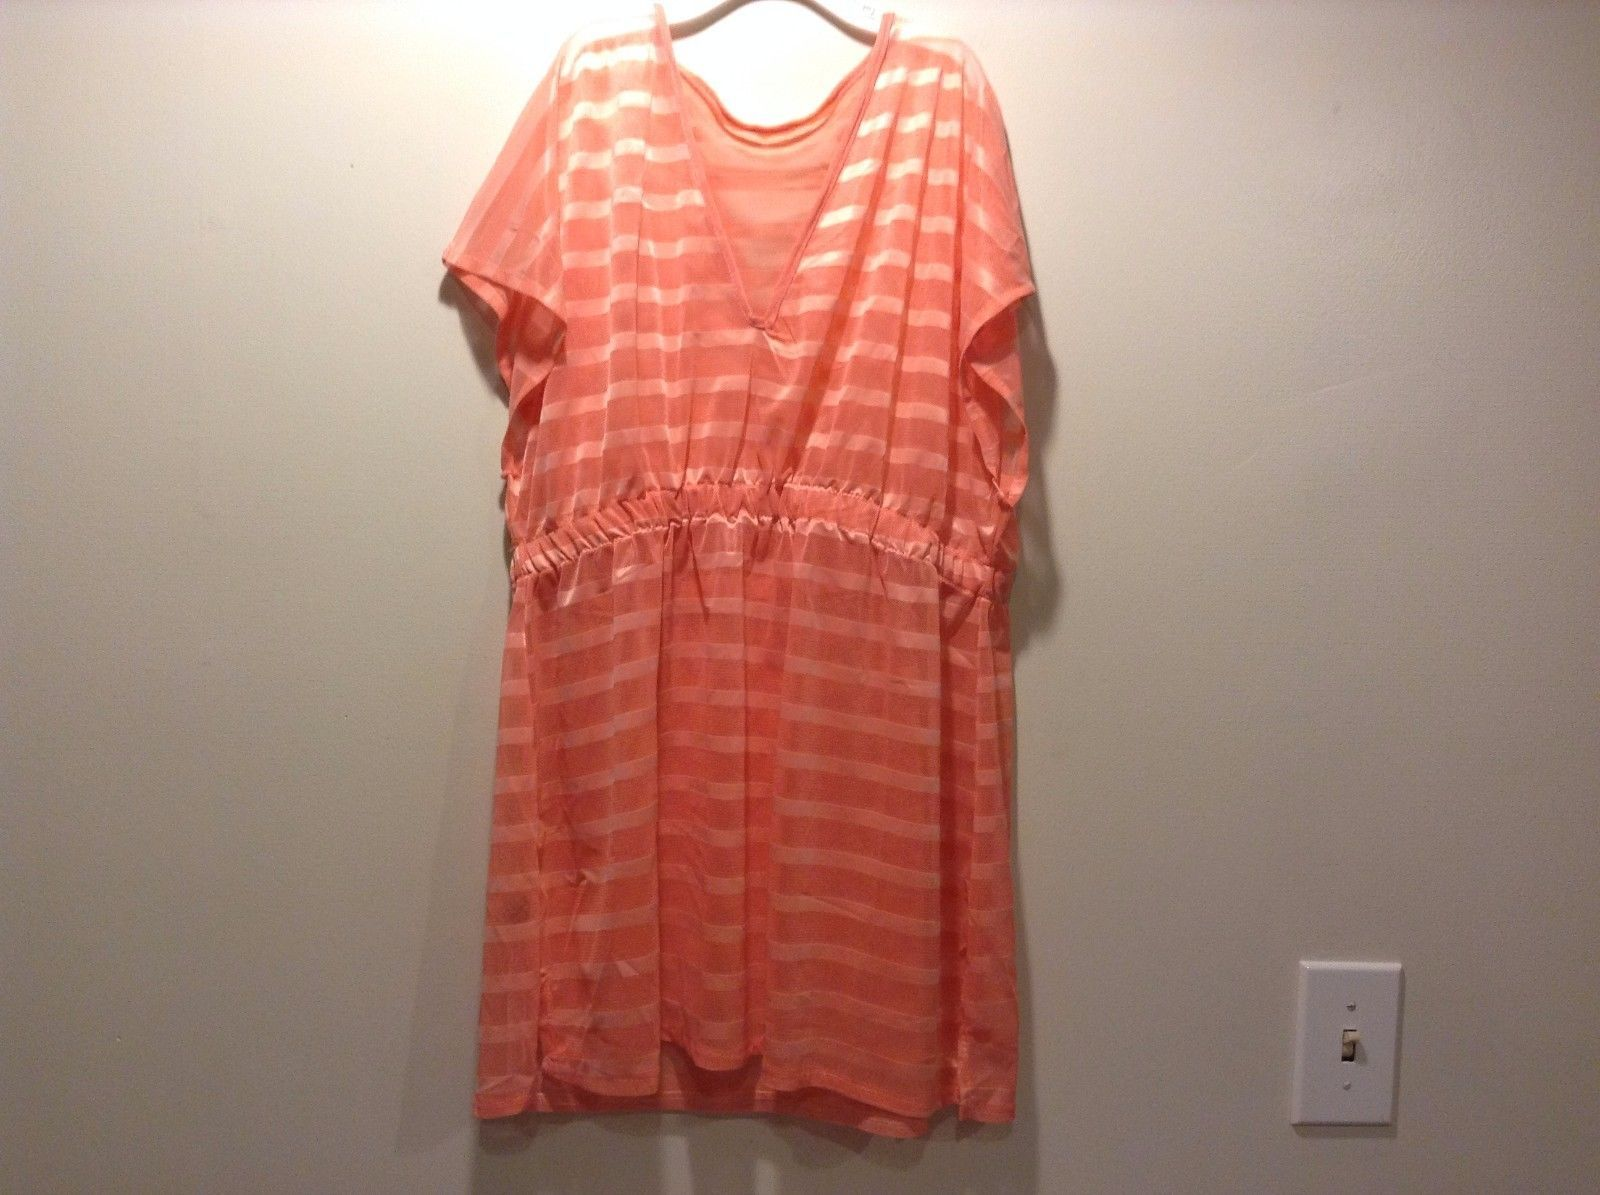 Love of Fashion Pink Horizontal Striped Sheer V-Neck Cinched Waist New Top Shirt